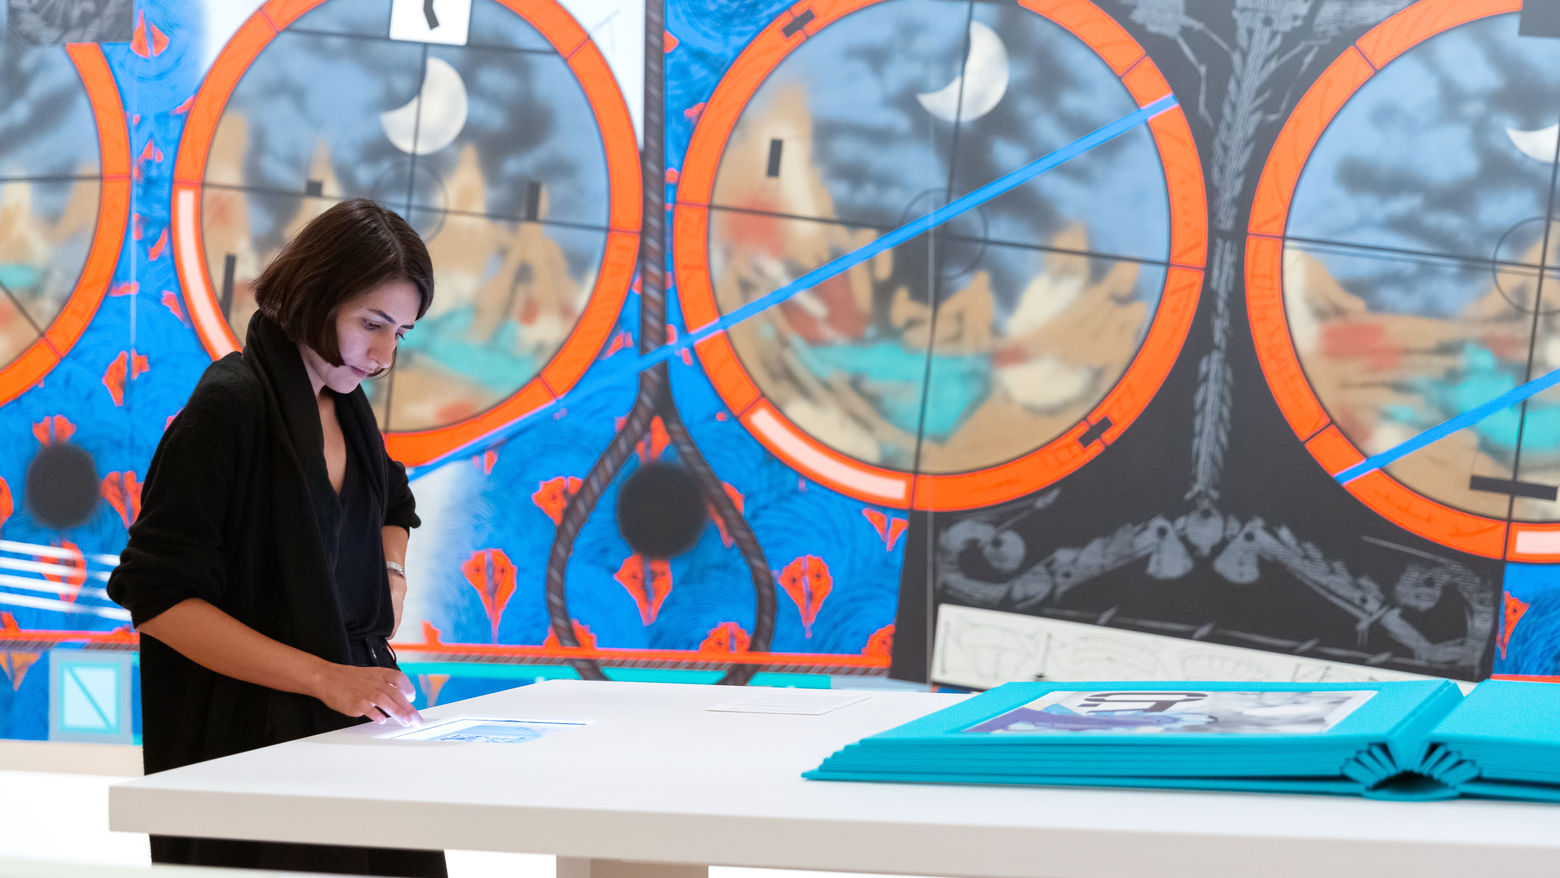 Visitor in a gallery stands, looking down at a device embedded in a table. A very large teal book is also on the table. In the background is a wall-sized painting with geometric designs, red and blue background with black lines.circles,